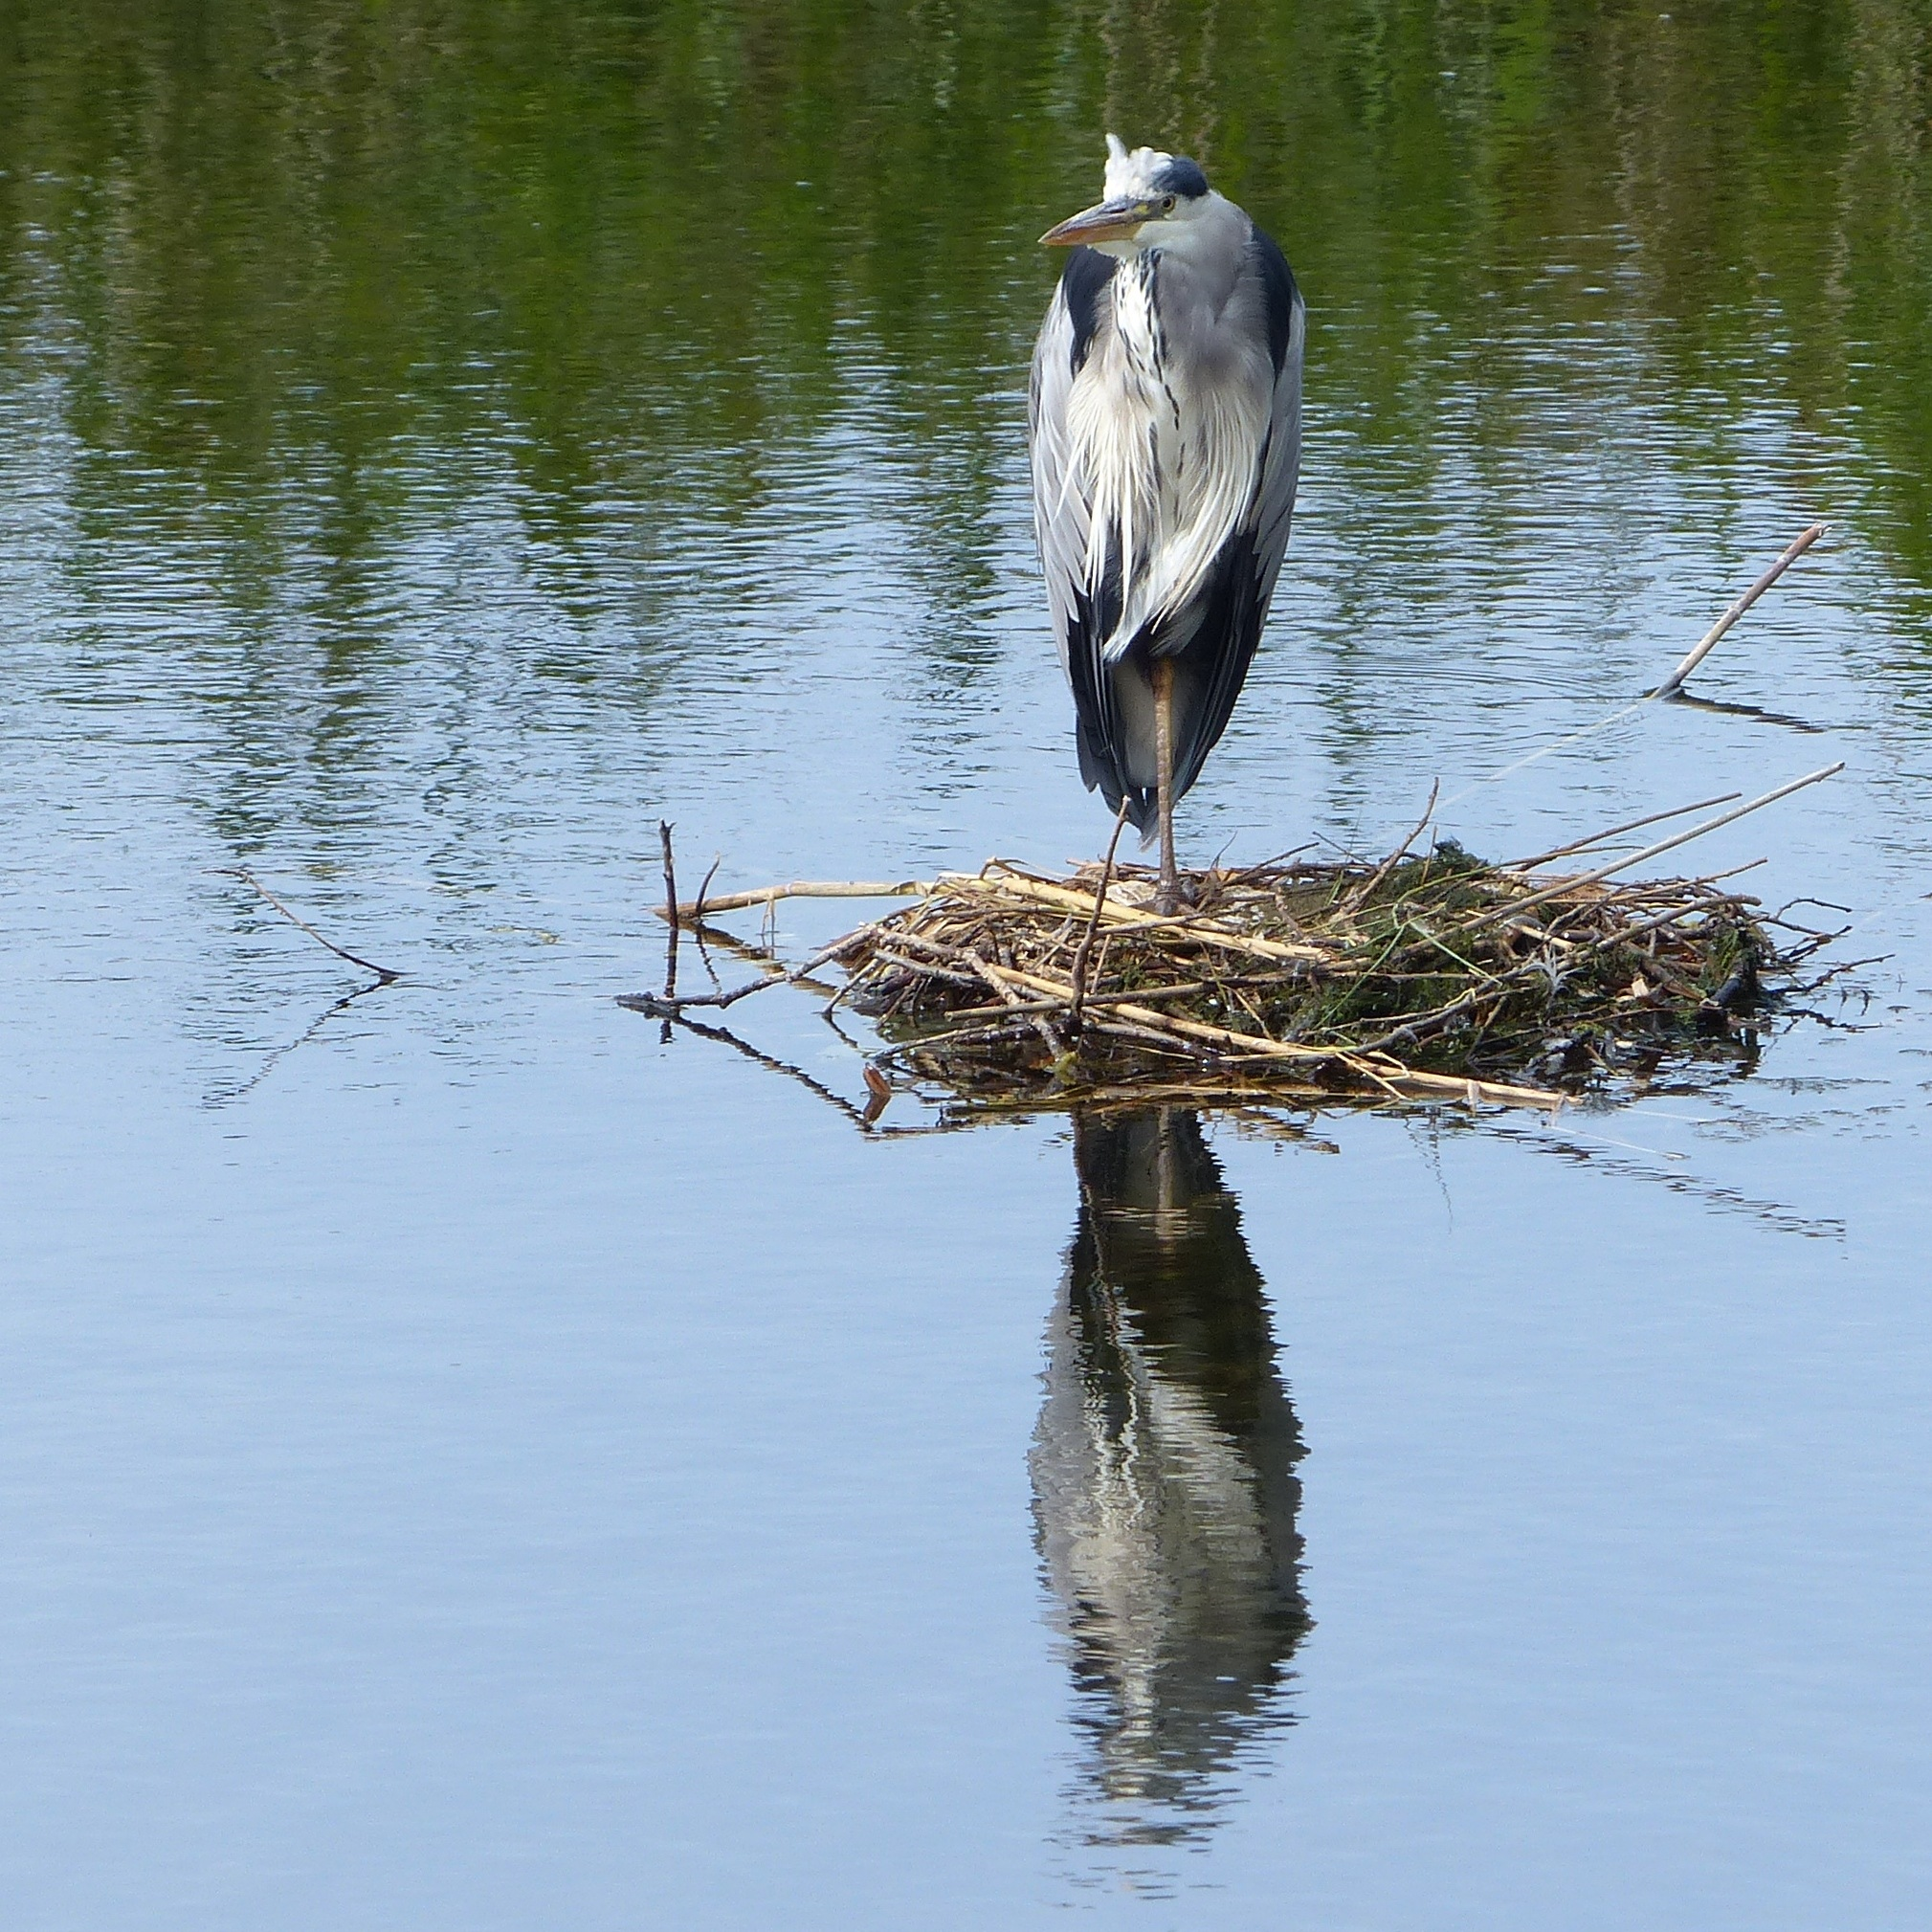 Heron by Rosita Ridell